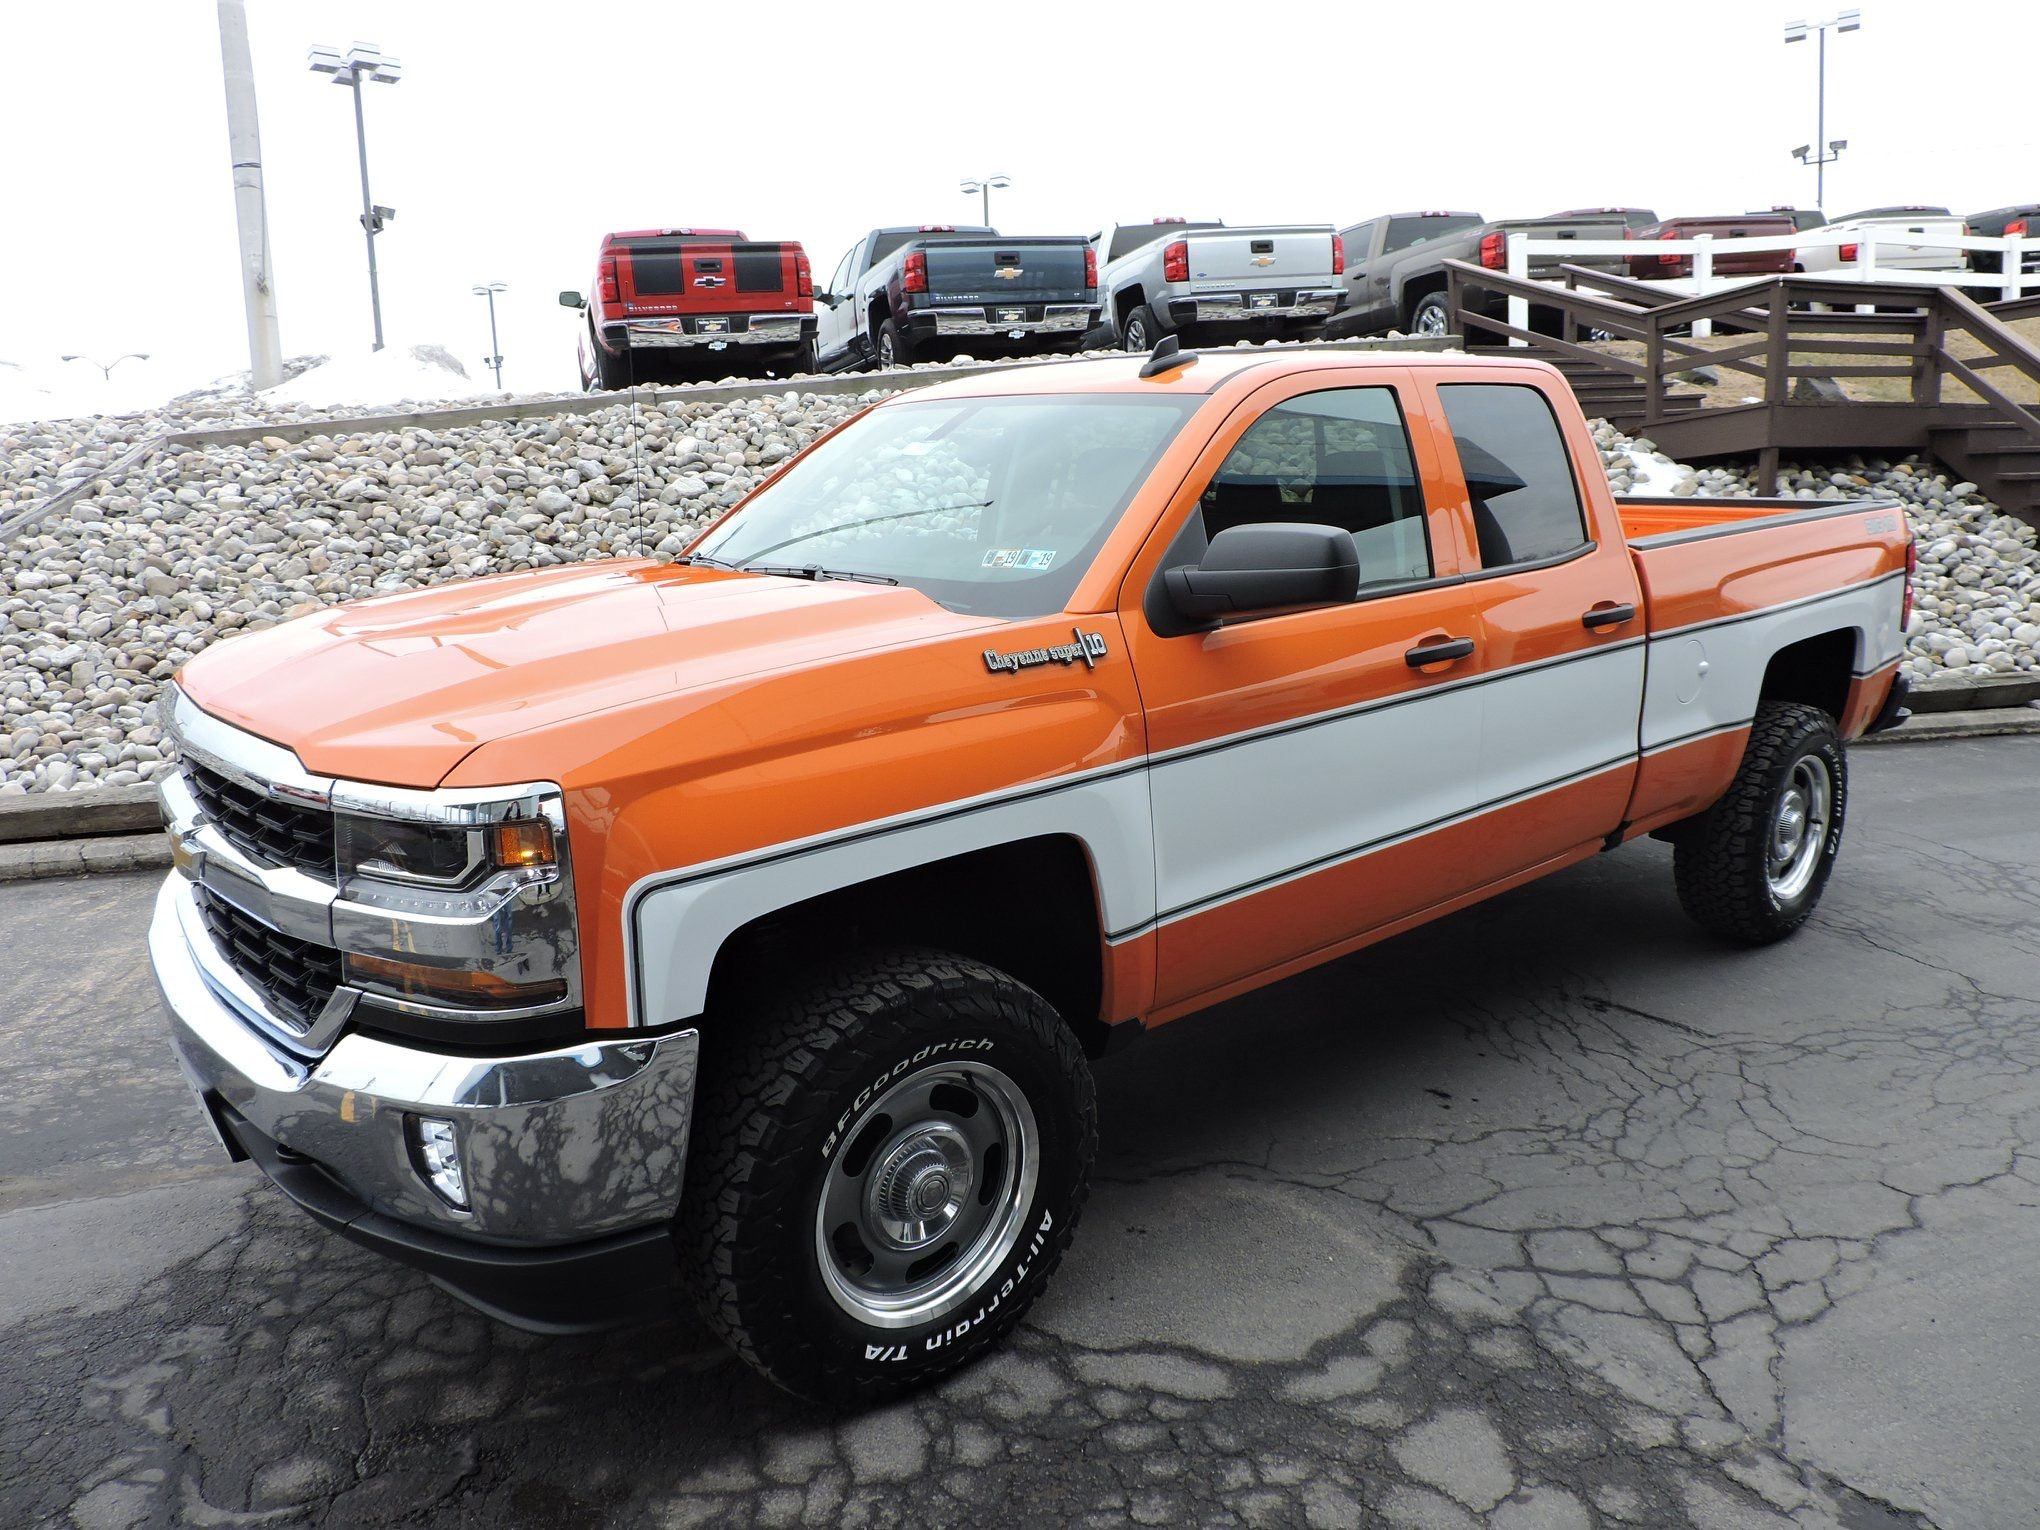 Nice square body look | Trucks | Chevy vehicles, Chevy ...